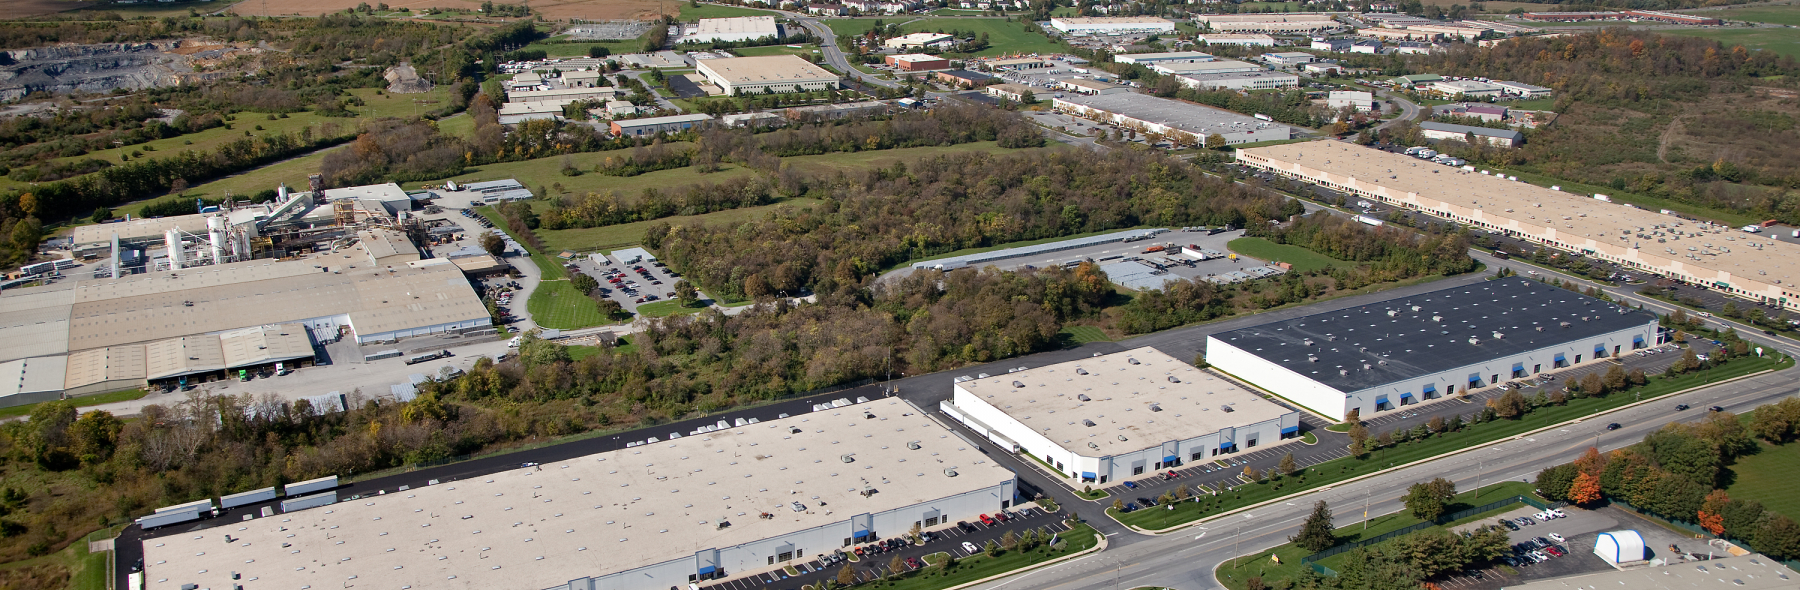 Wedgewood South Aerial